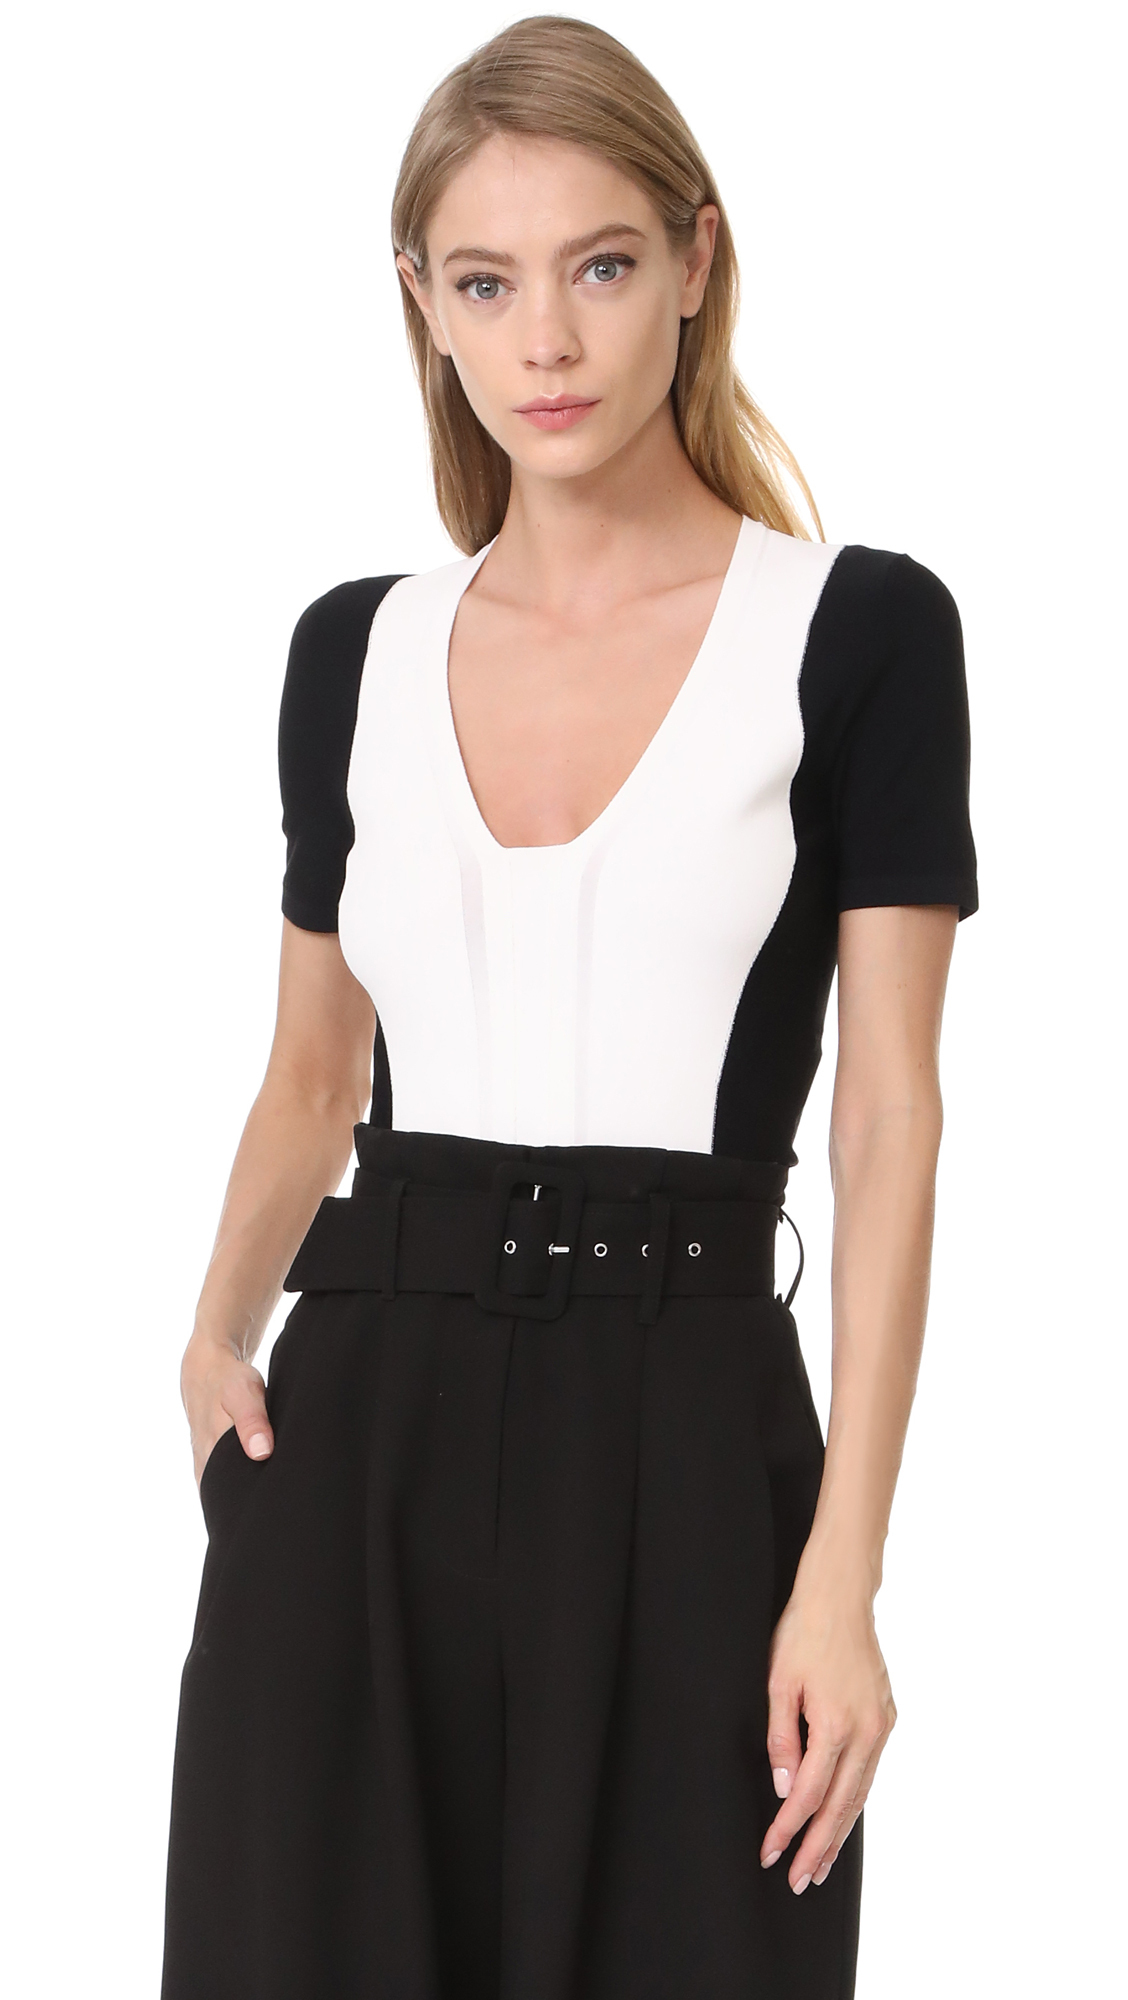 Narciso Rodriguez 3/4 Sleeve Knit Top - White/Black